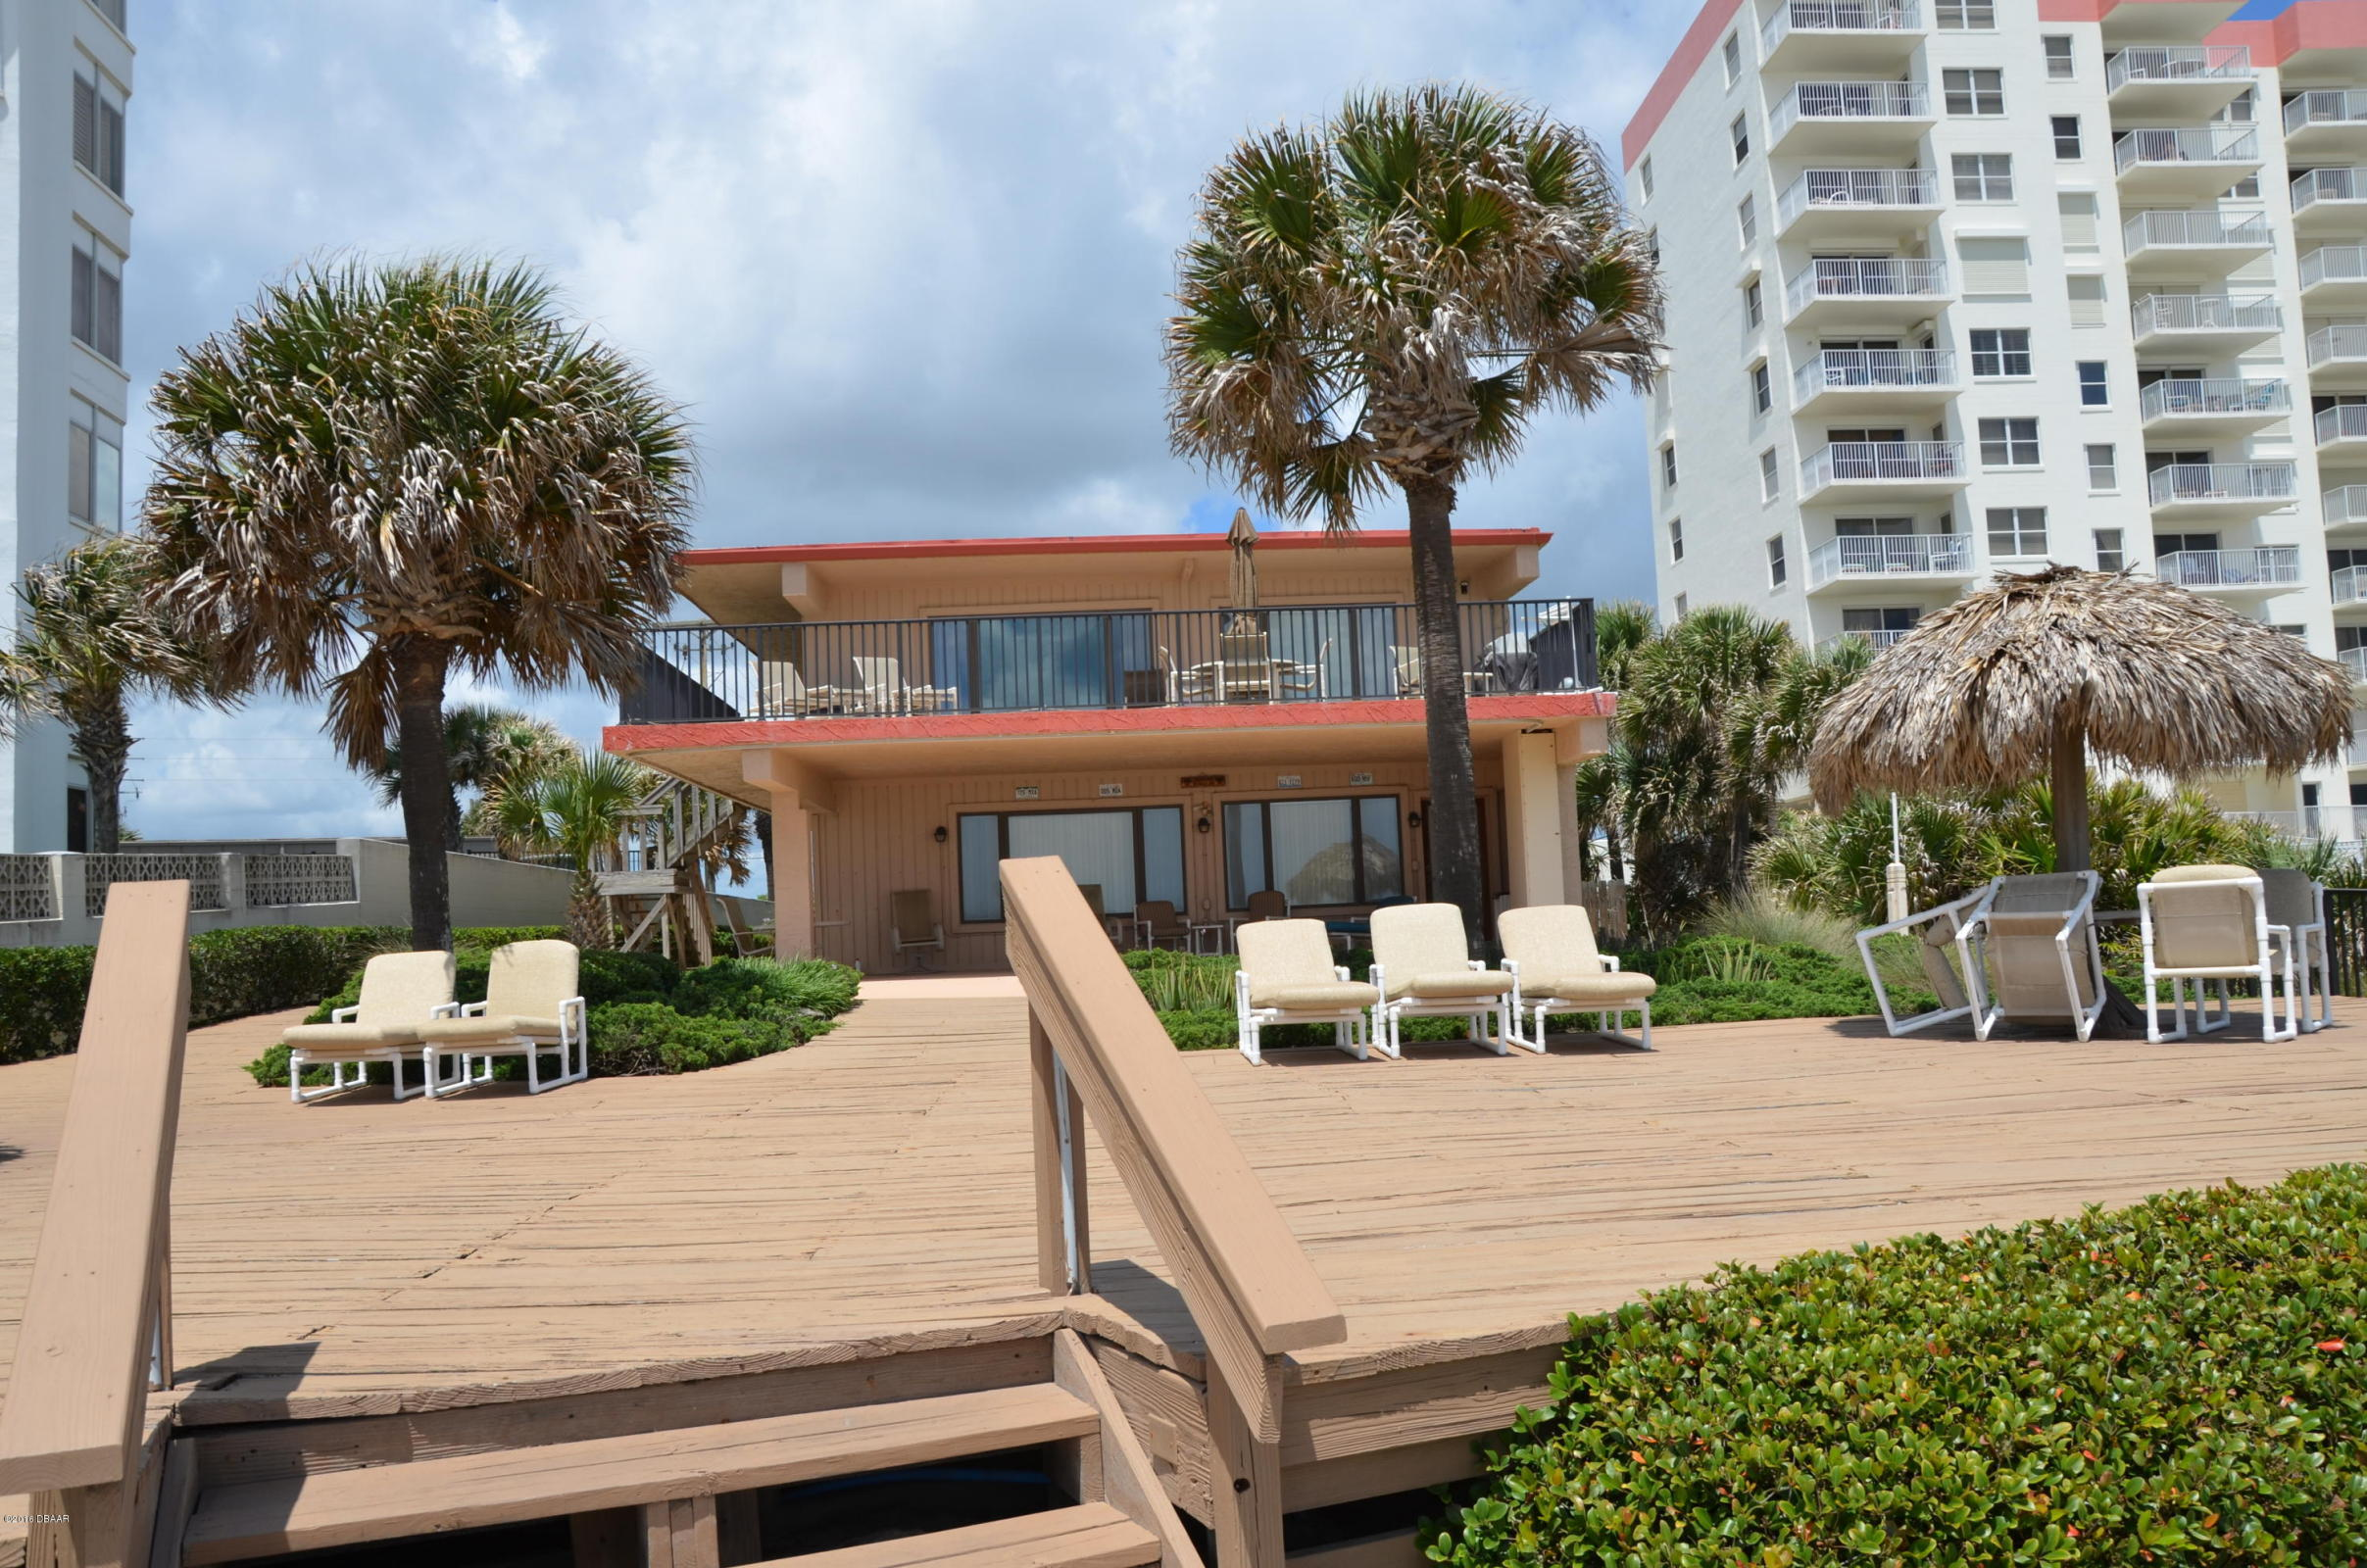 sands point condos for sale in ormond beach fl